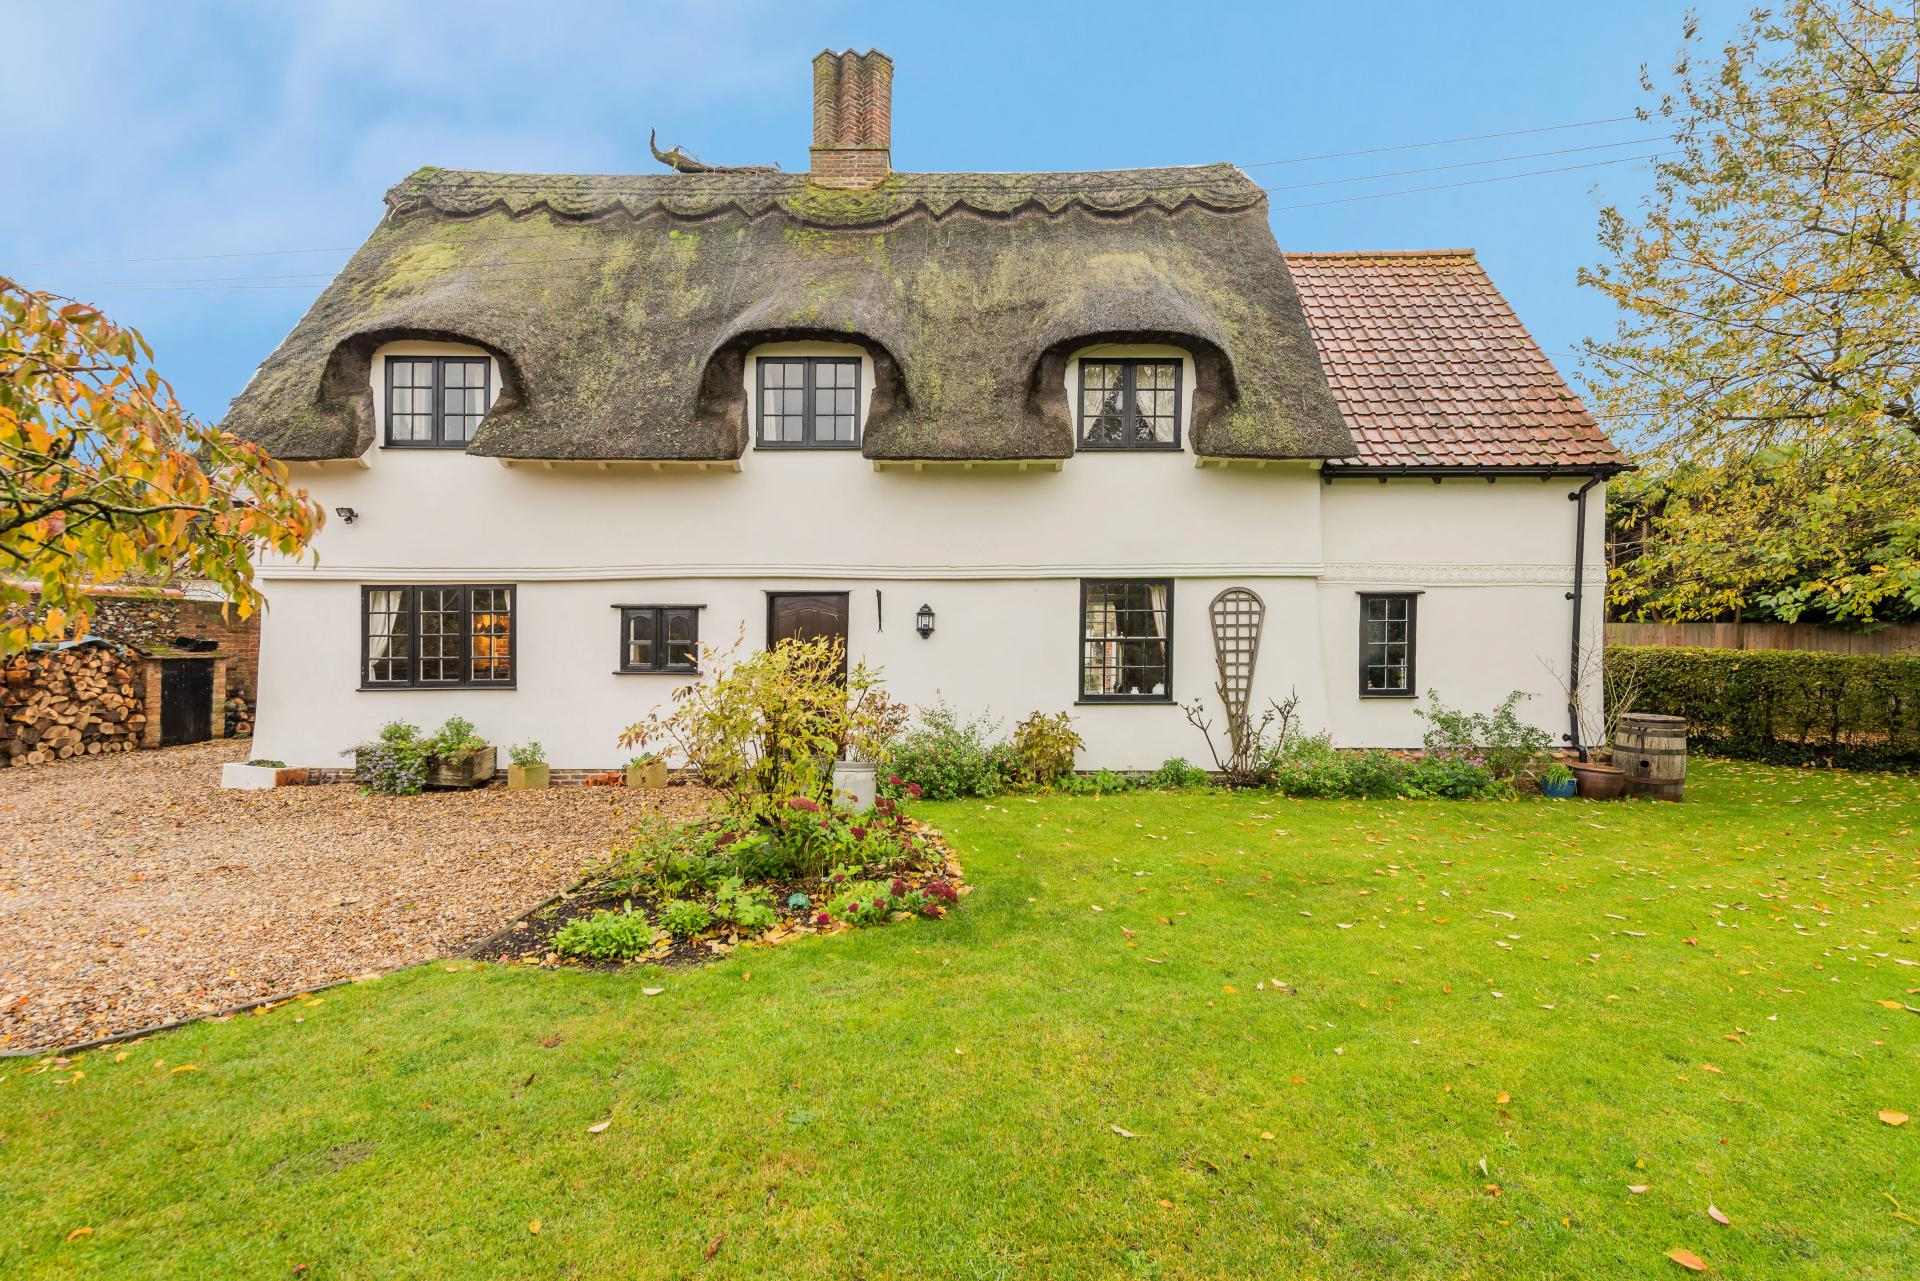 white chocolate box countryside cottage with black thatched roof and English country garden